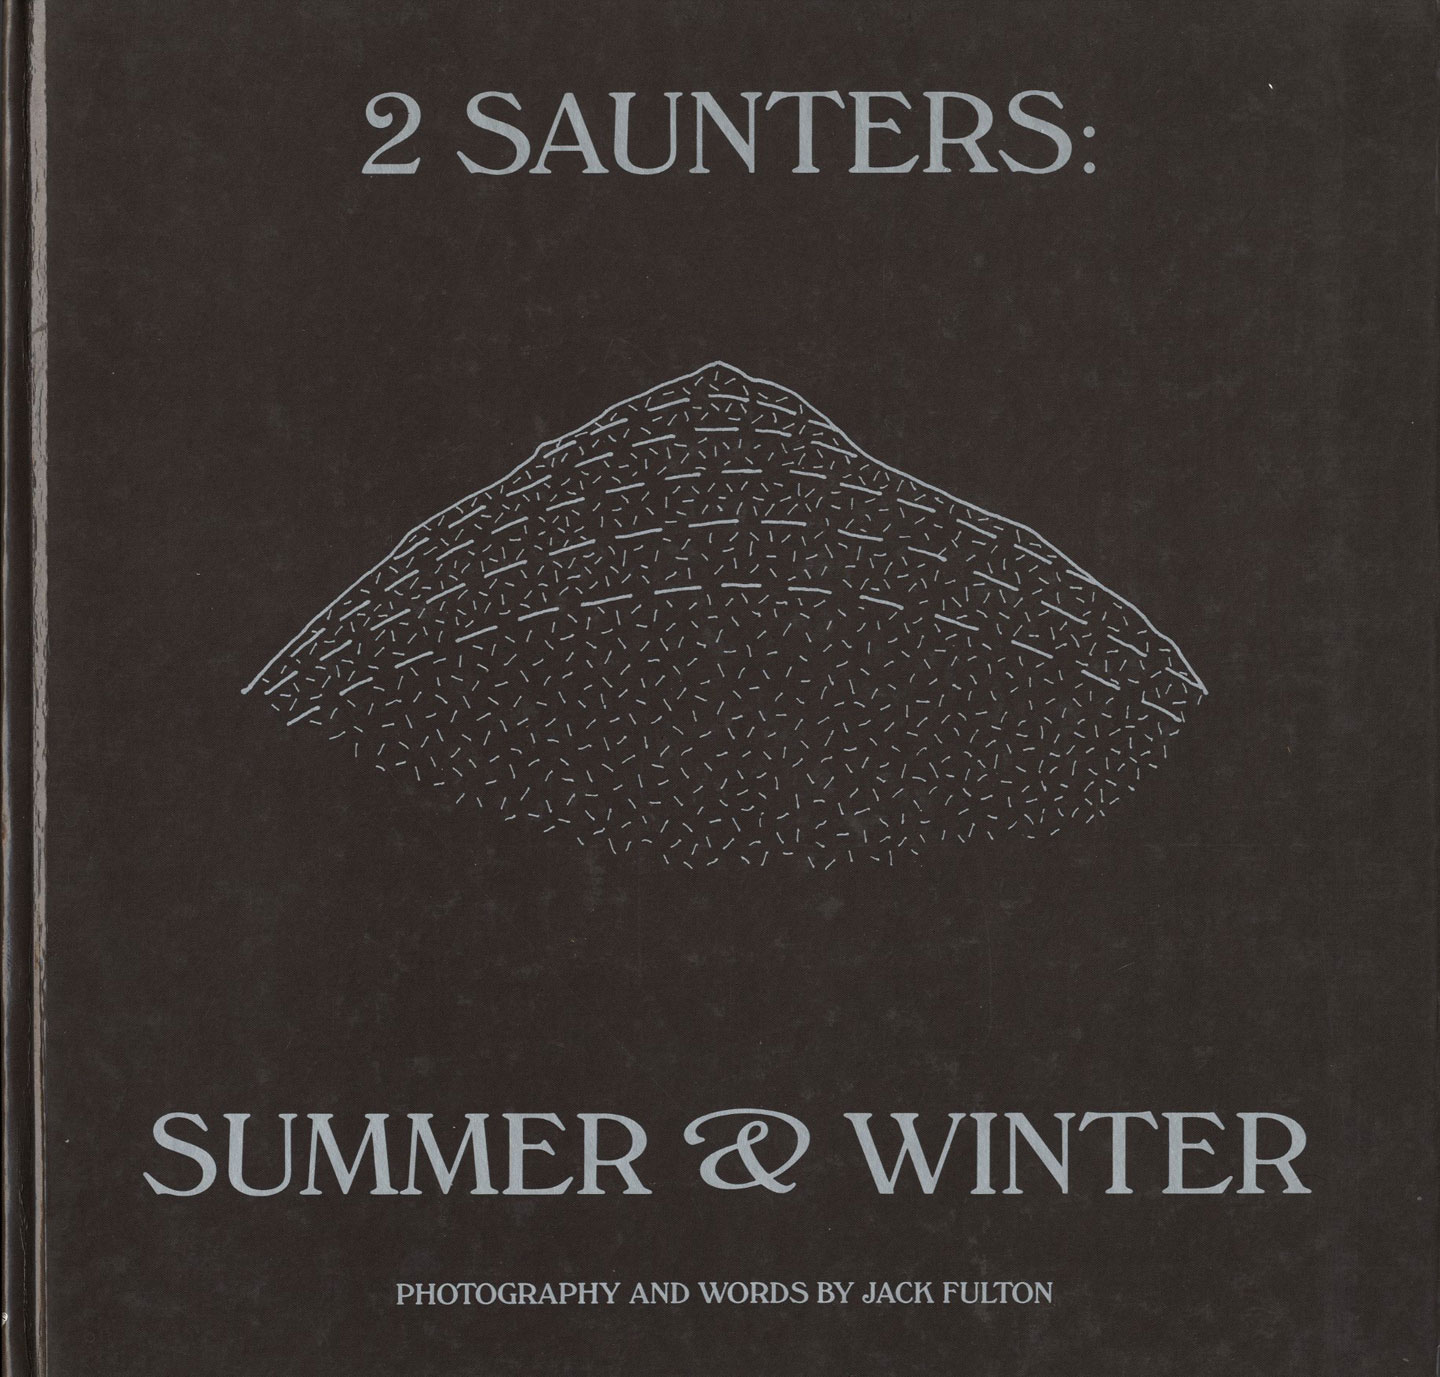 Jack Fulton: 2 Saunters: Summer & Winter 1978 [SIGNED]